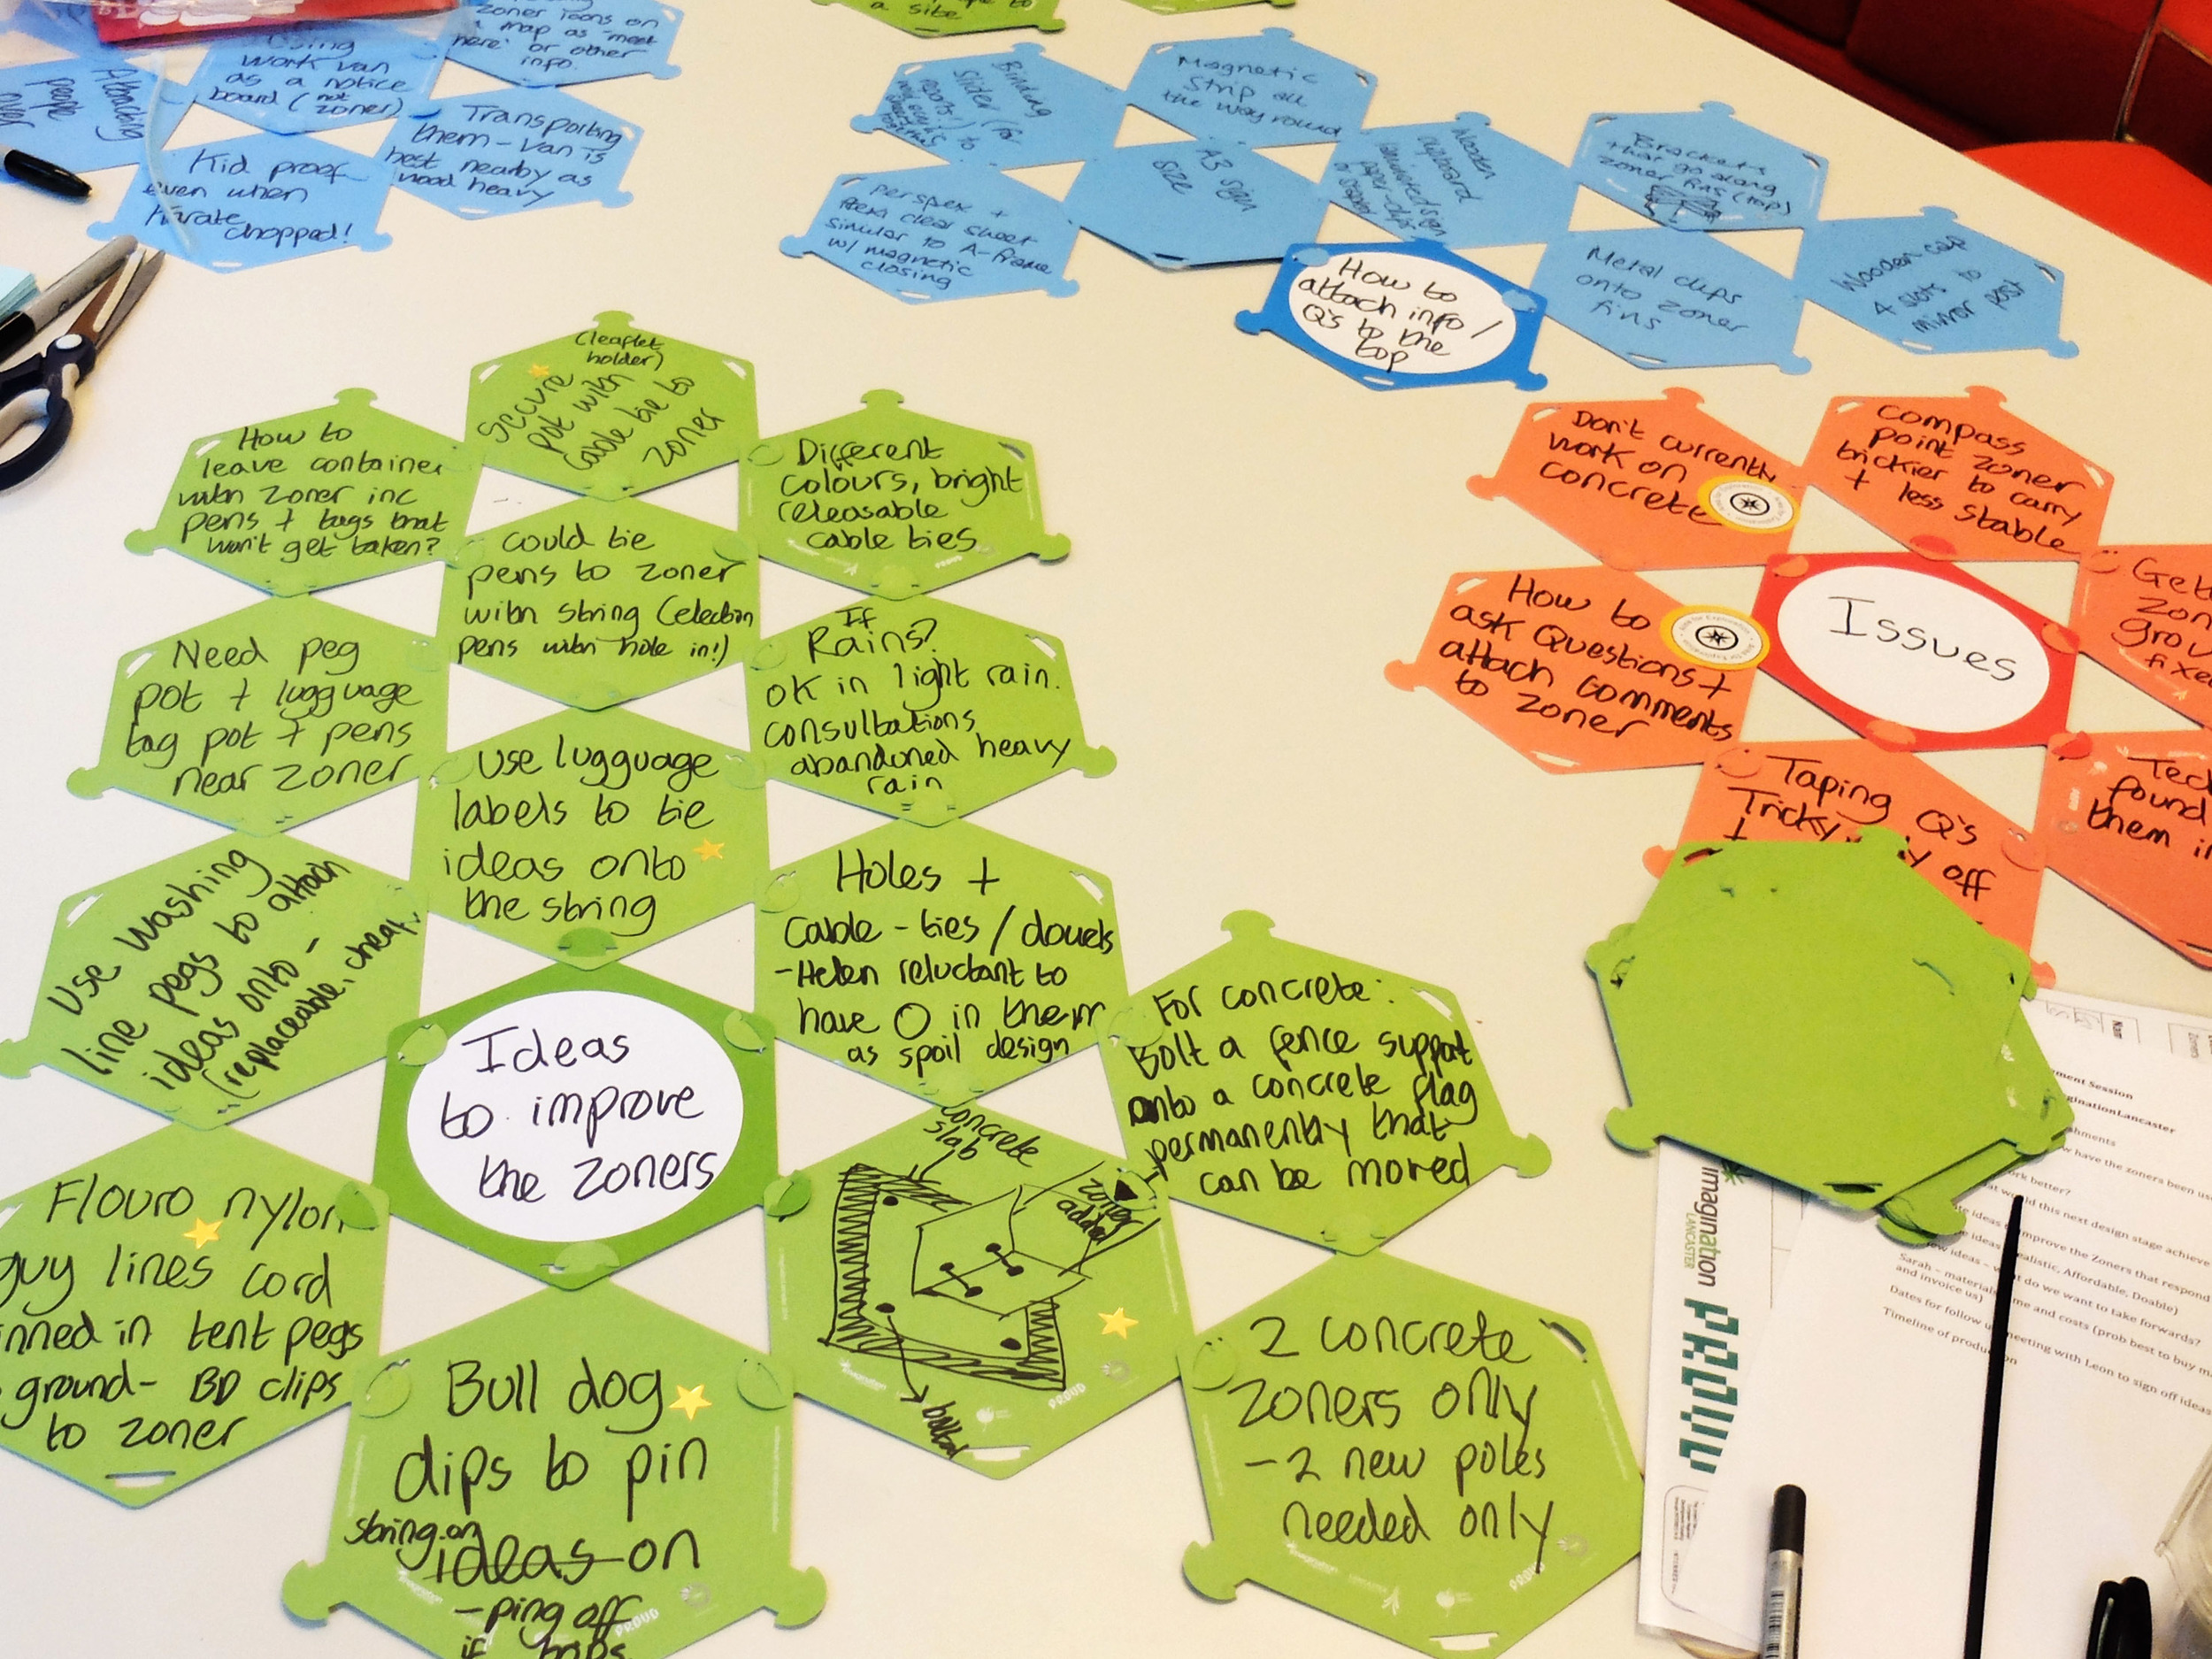 Ideas generation using the PROUD hexagon tool